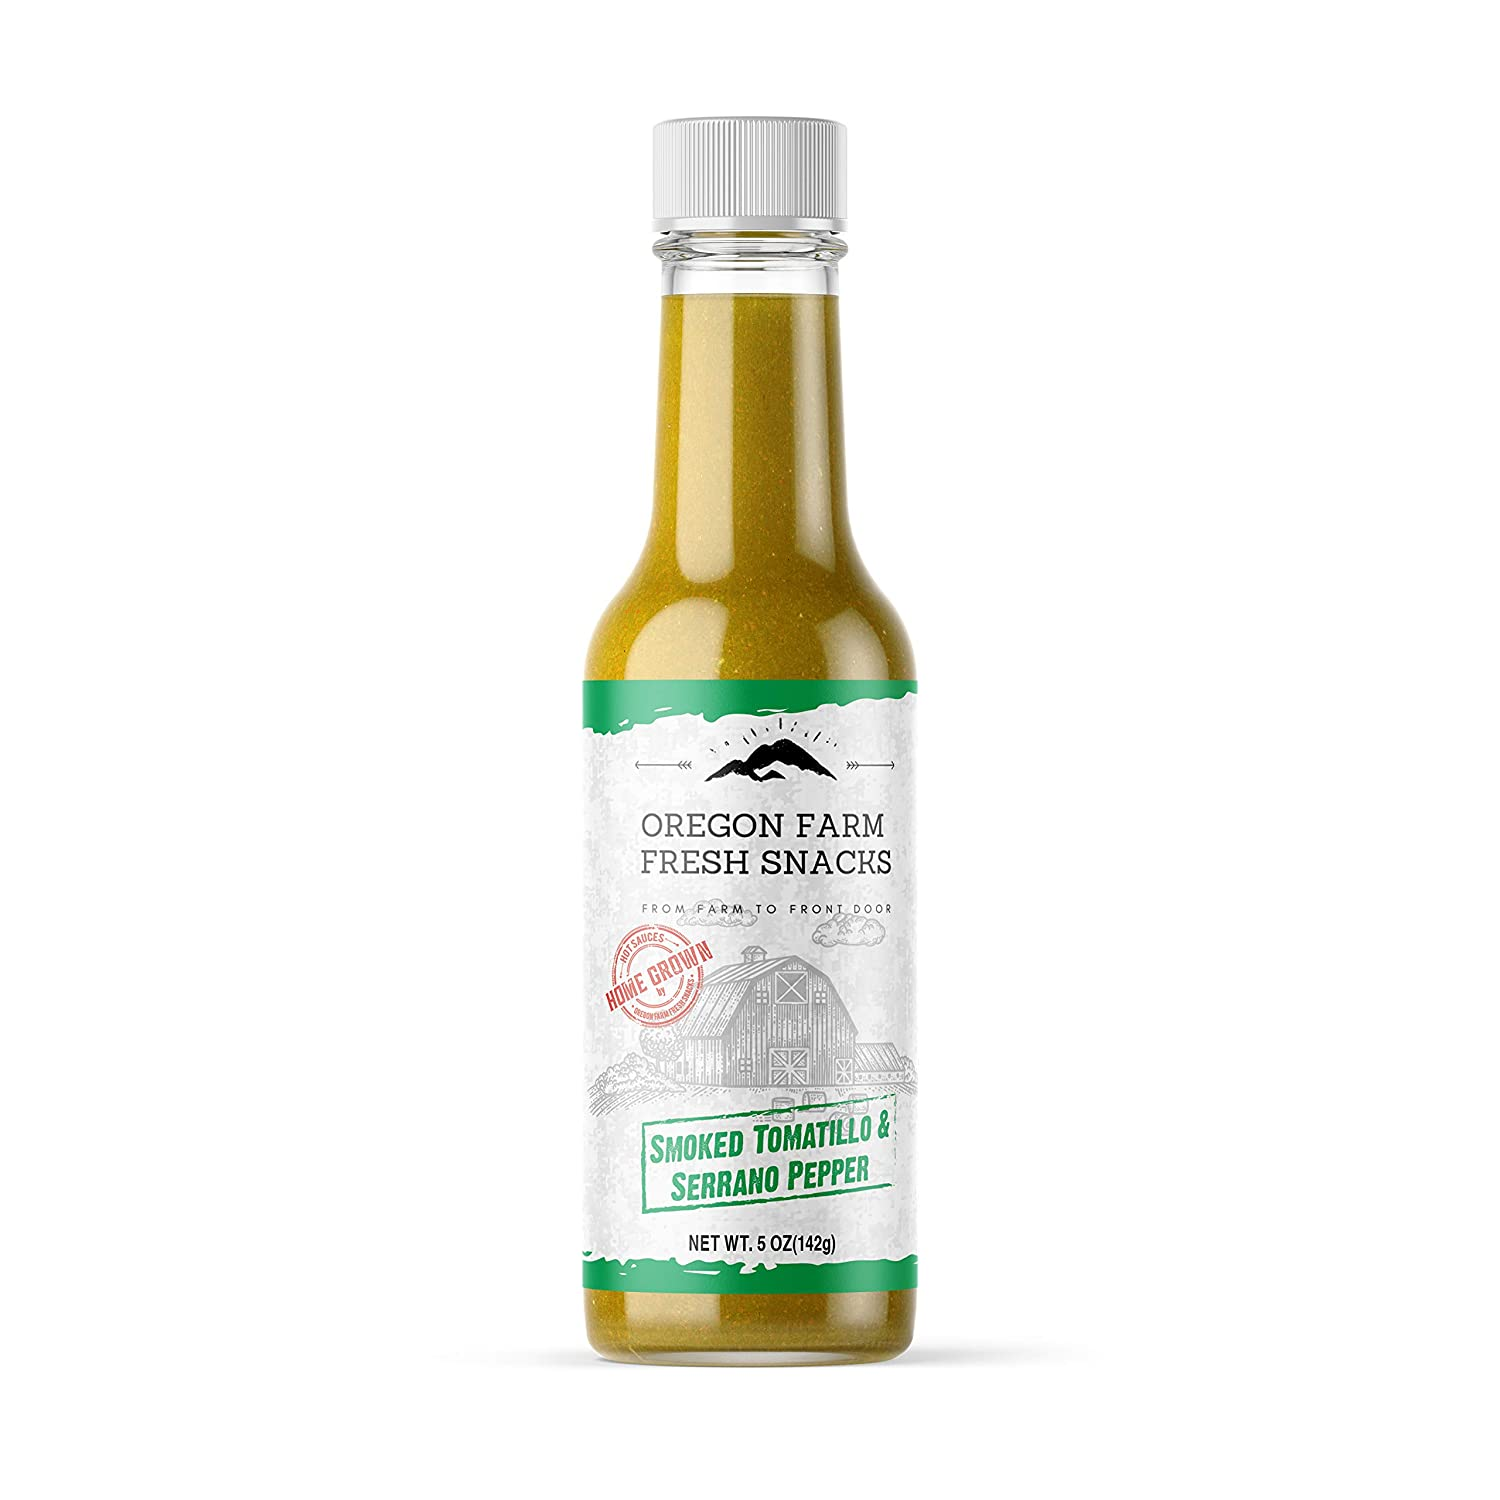 Oregon Farm Fresh Hot Sauces - Gourmet Smoked Tomatillo and Serrano Peppers Flavor Hot Sauce - Made with Wholesome Local Produce - Artisanally Crafted in Small Batches - Original Recipe - 5 Ounces